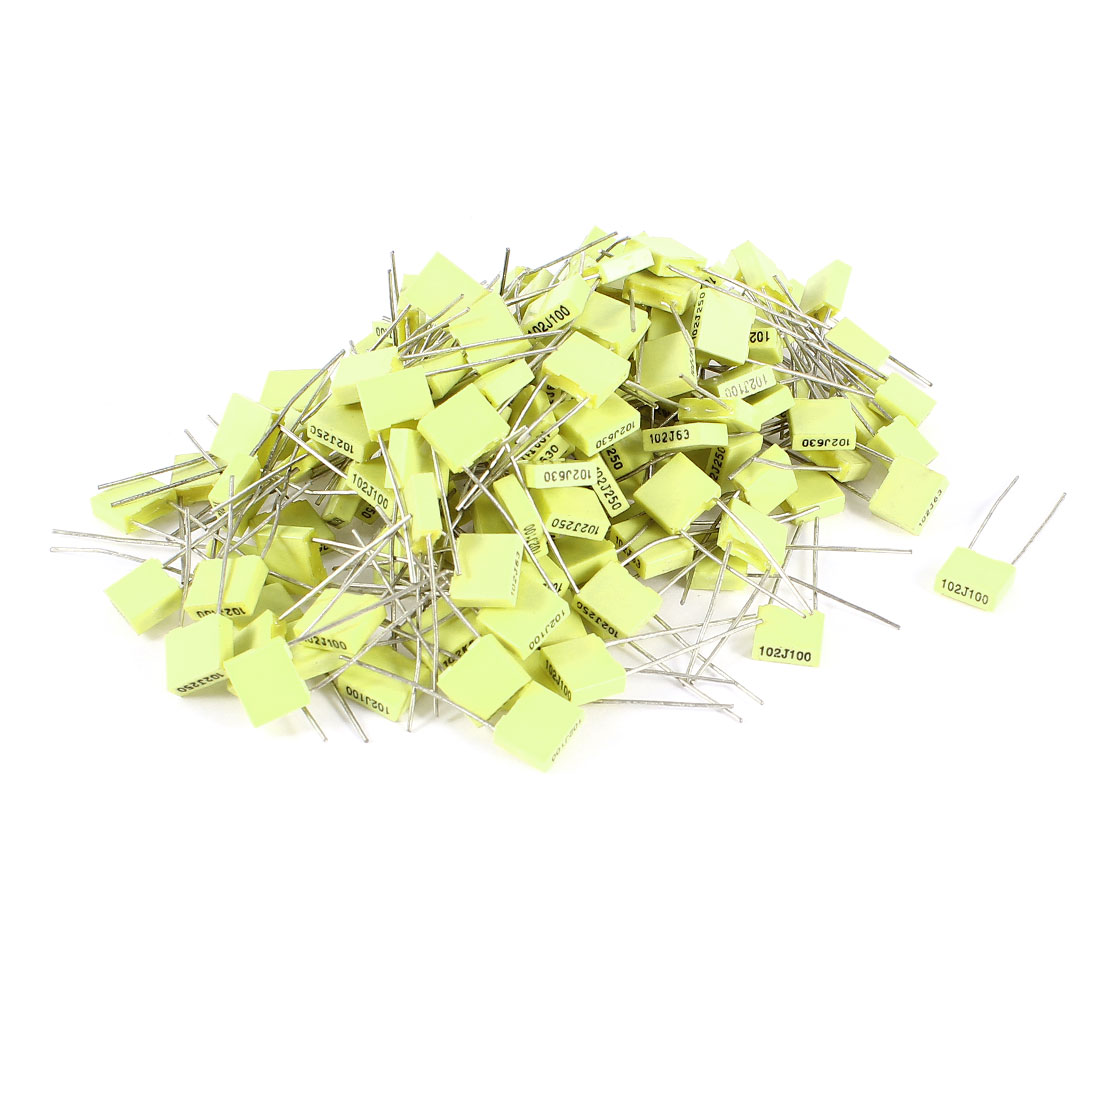 150 Pieces 100V 1NF Metal Radial Lead Box Type Film Correction Capacitors Yellow